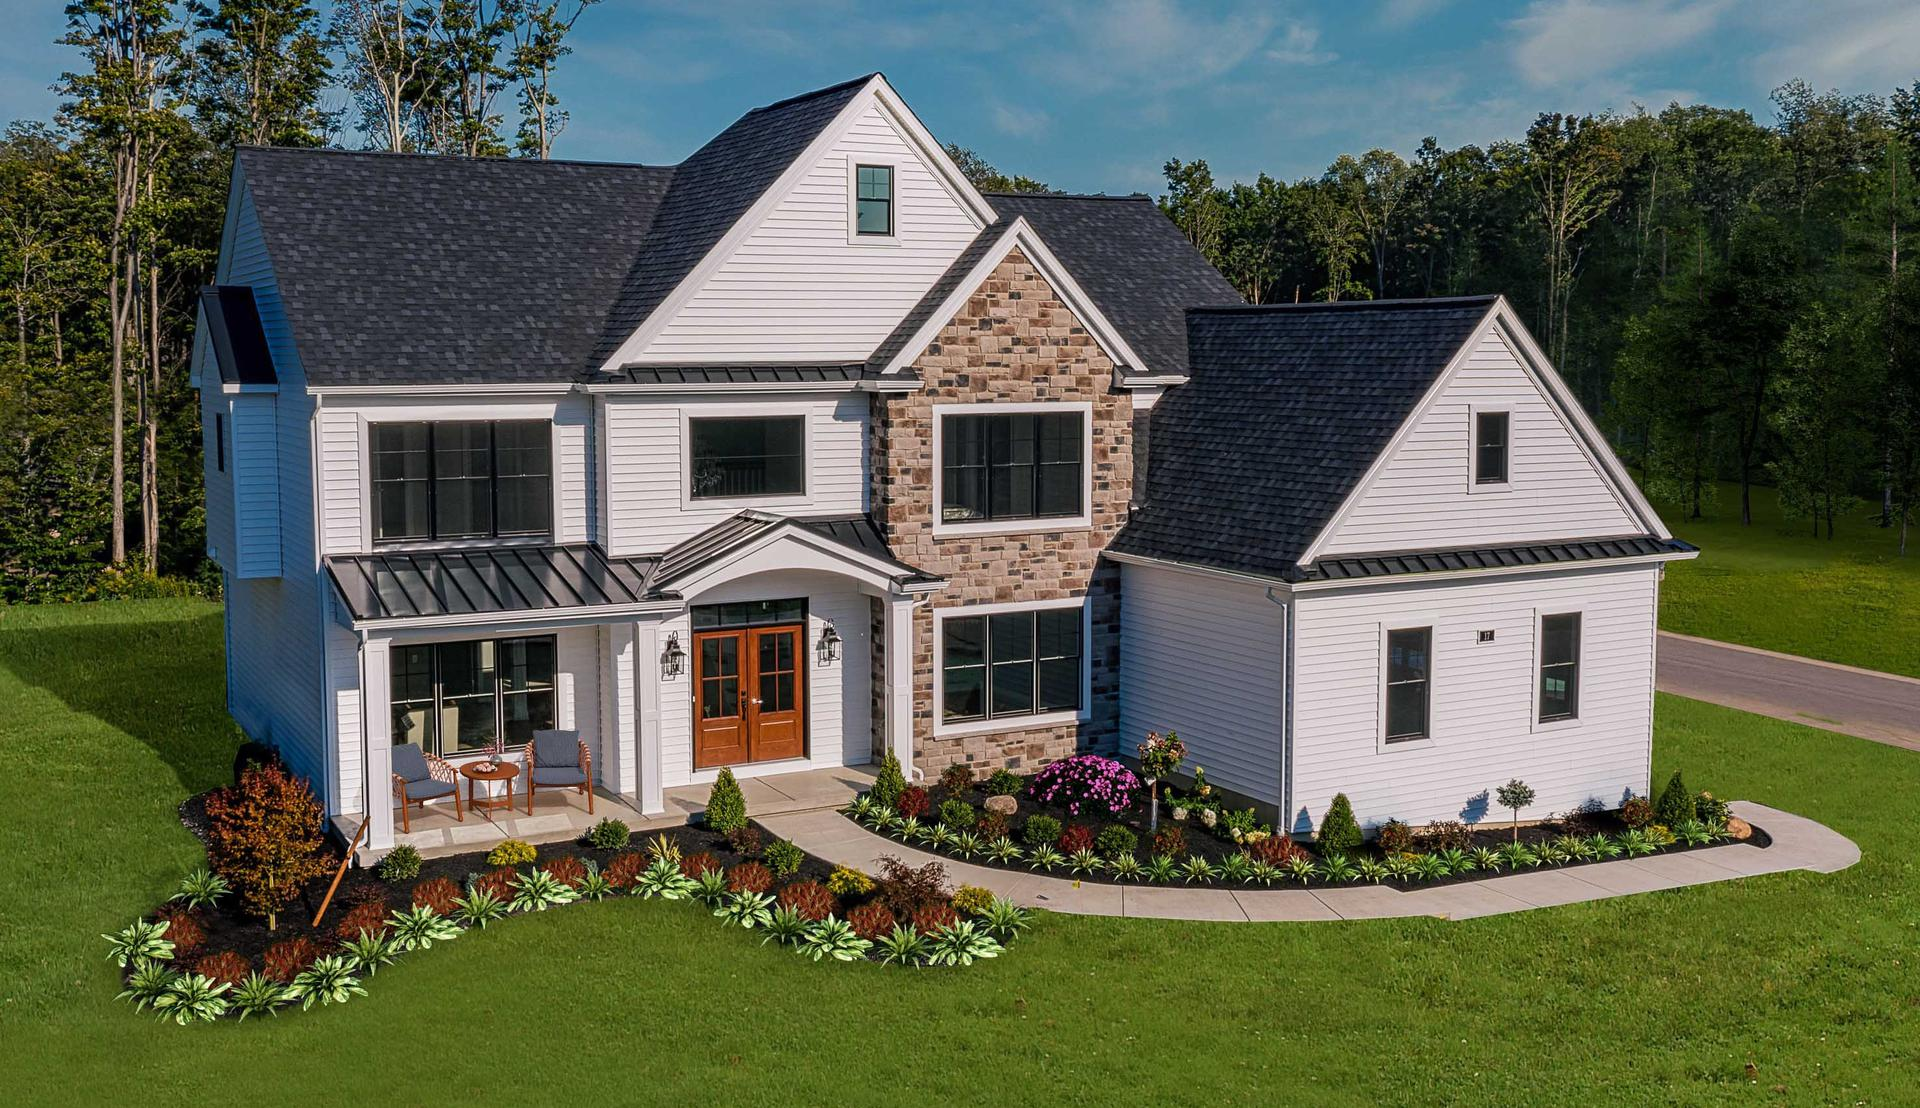 Birdsong Estates New Homes in Orchard Park NY